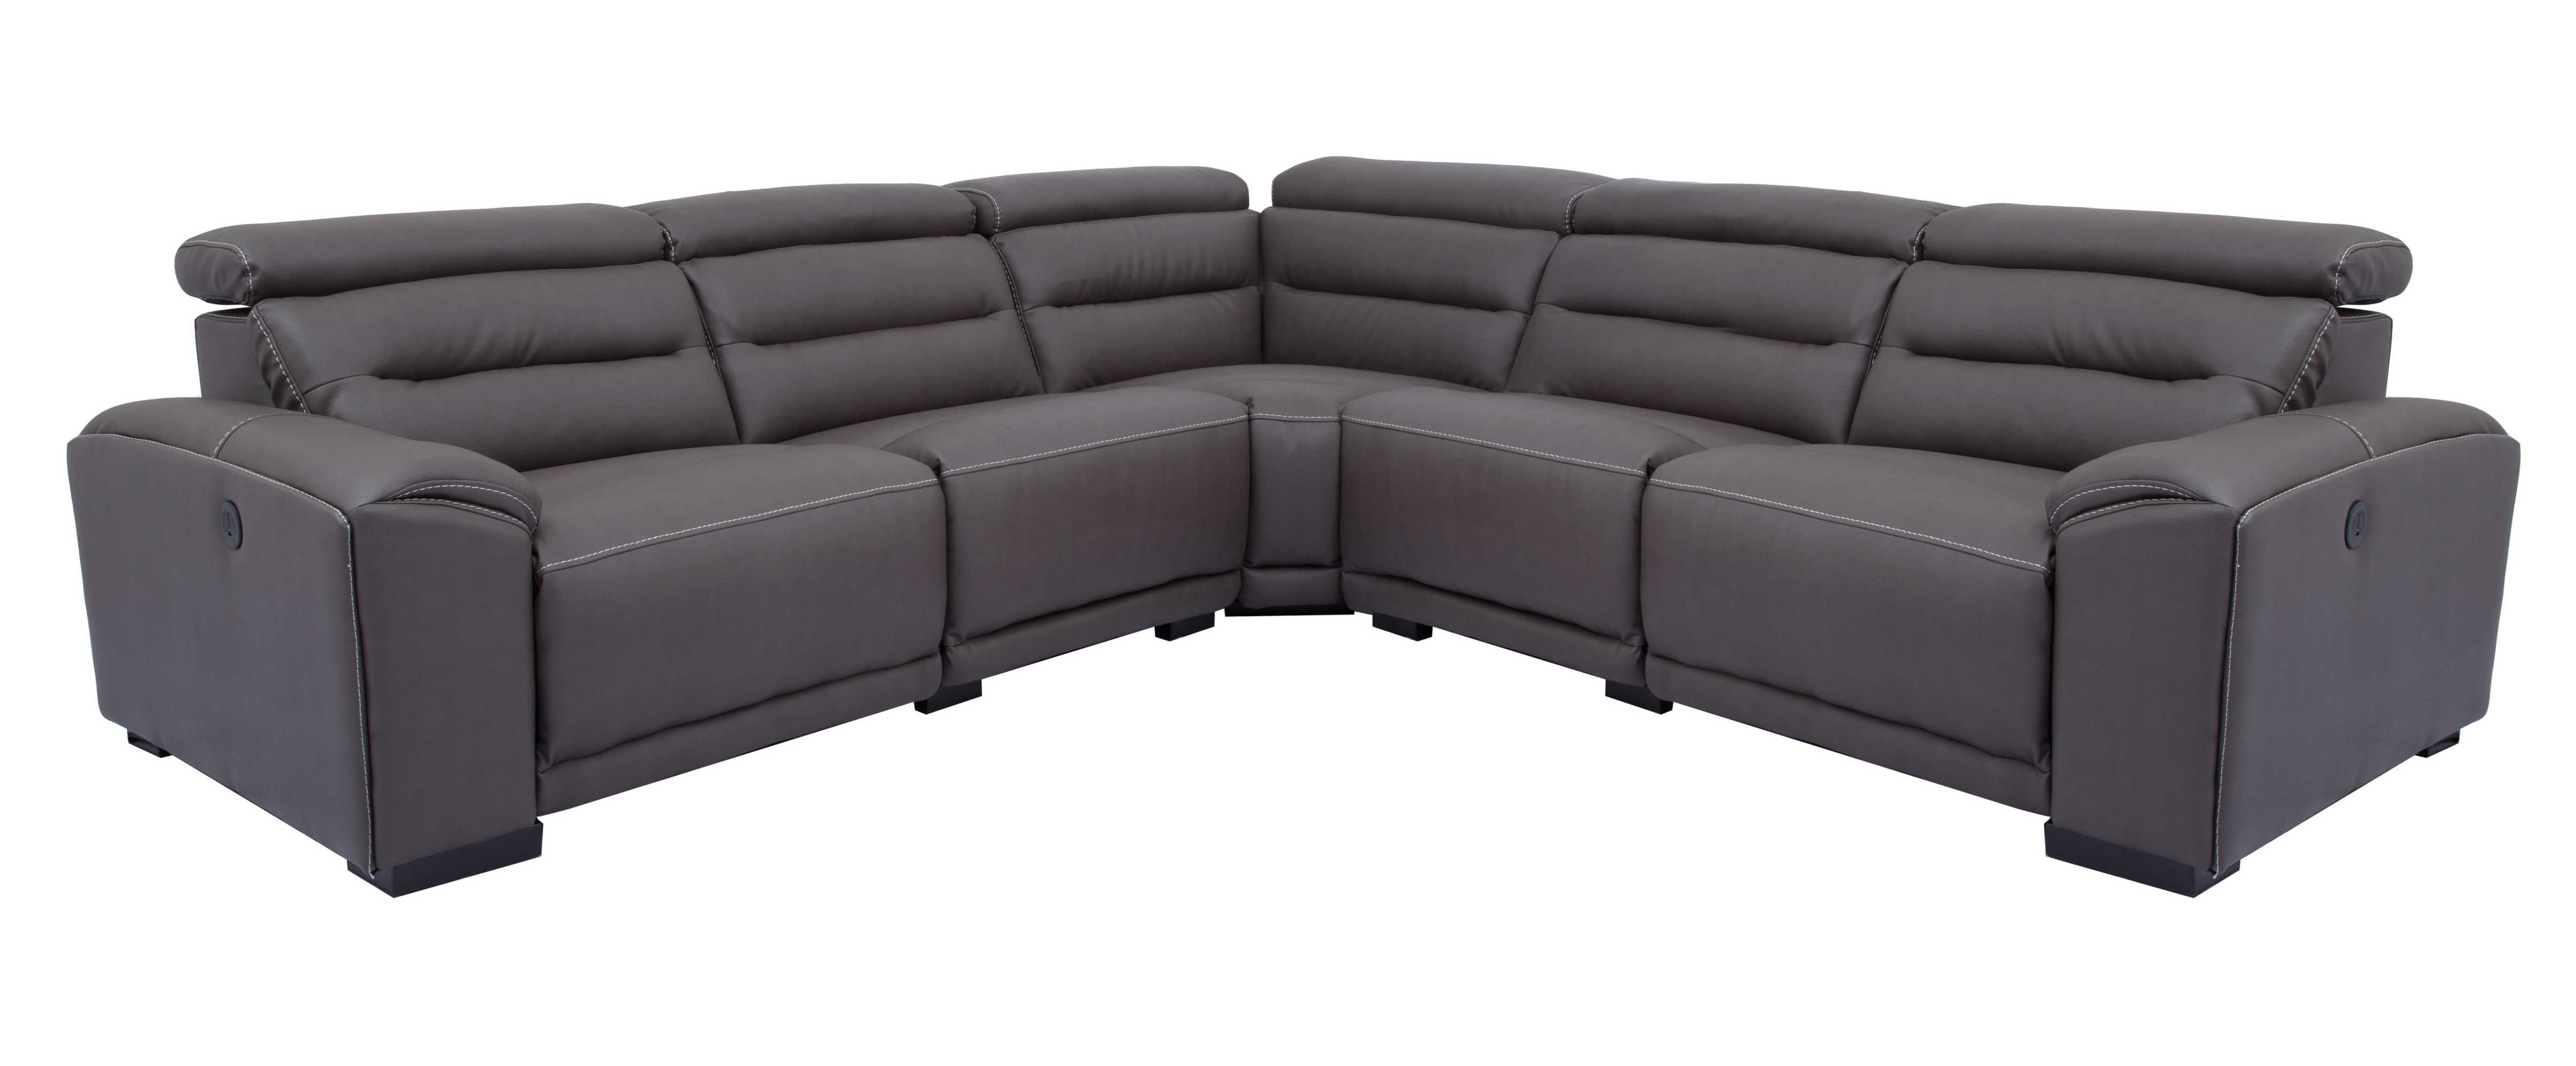 Sectionnel 5mcx Surplus Rd Sectional Couch Couch Sofas